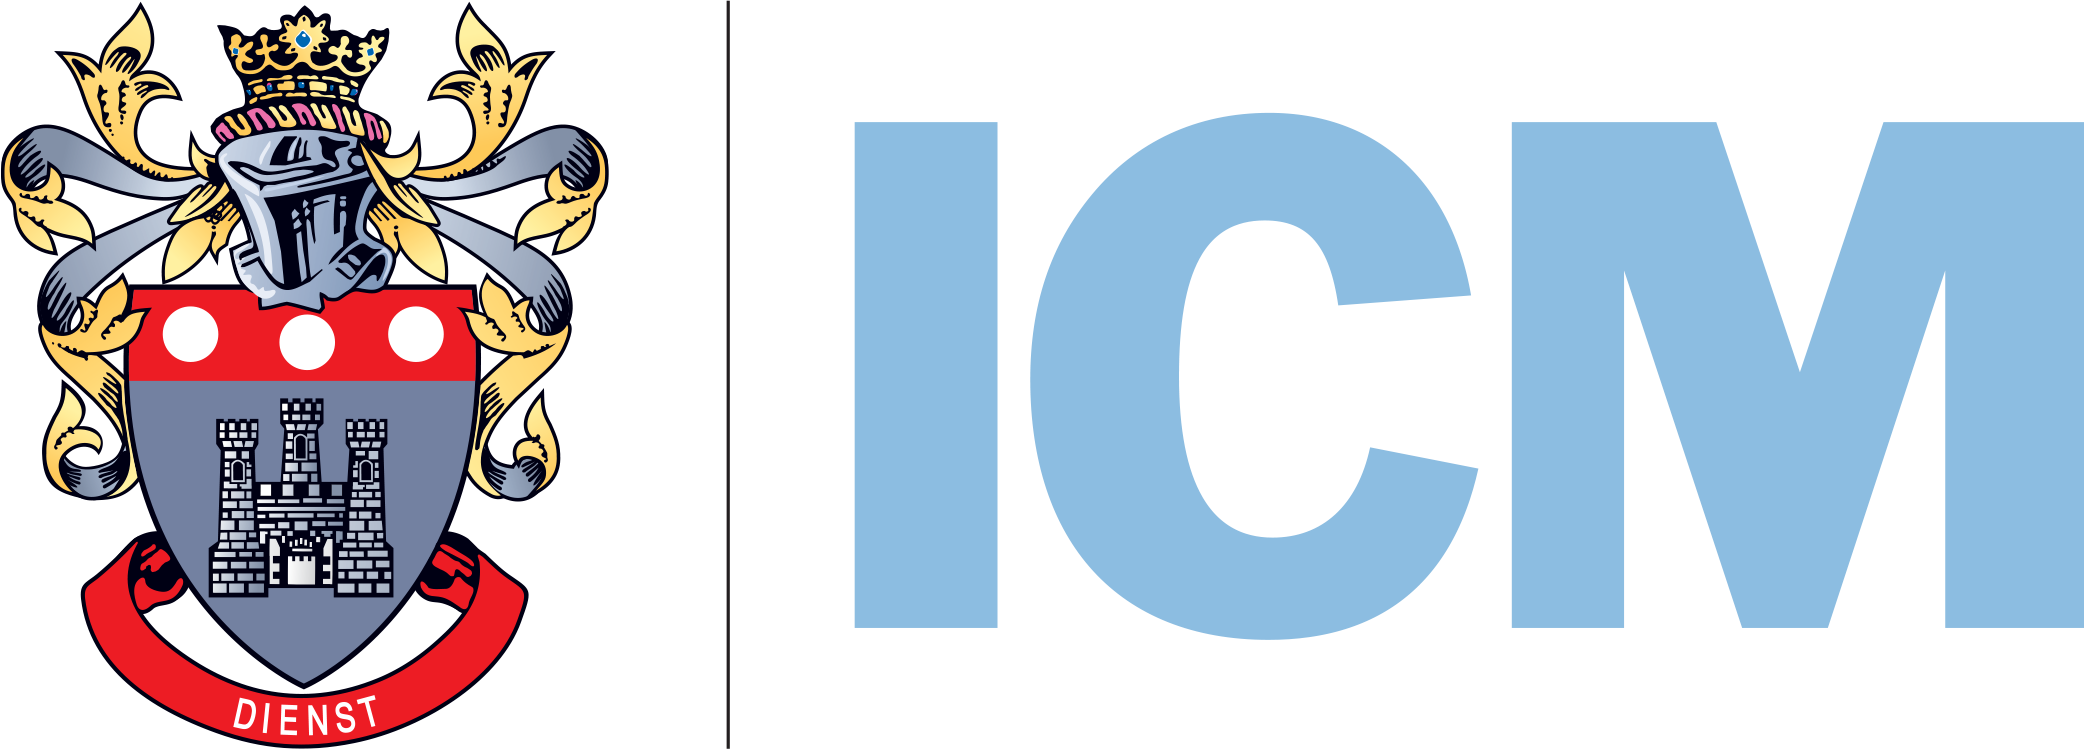 Icm logo download free clipart with a transparent background.